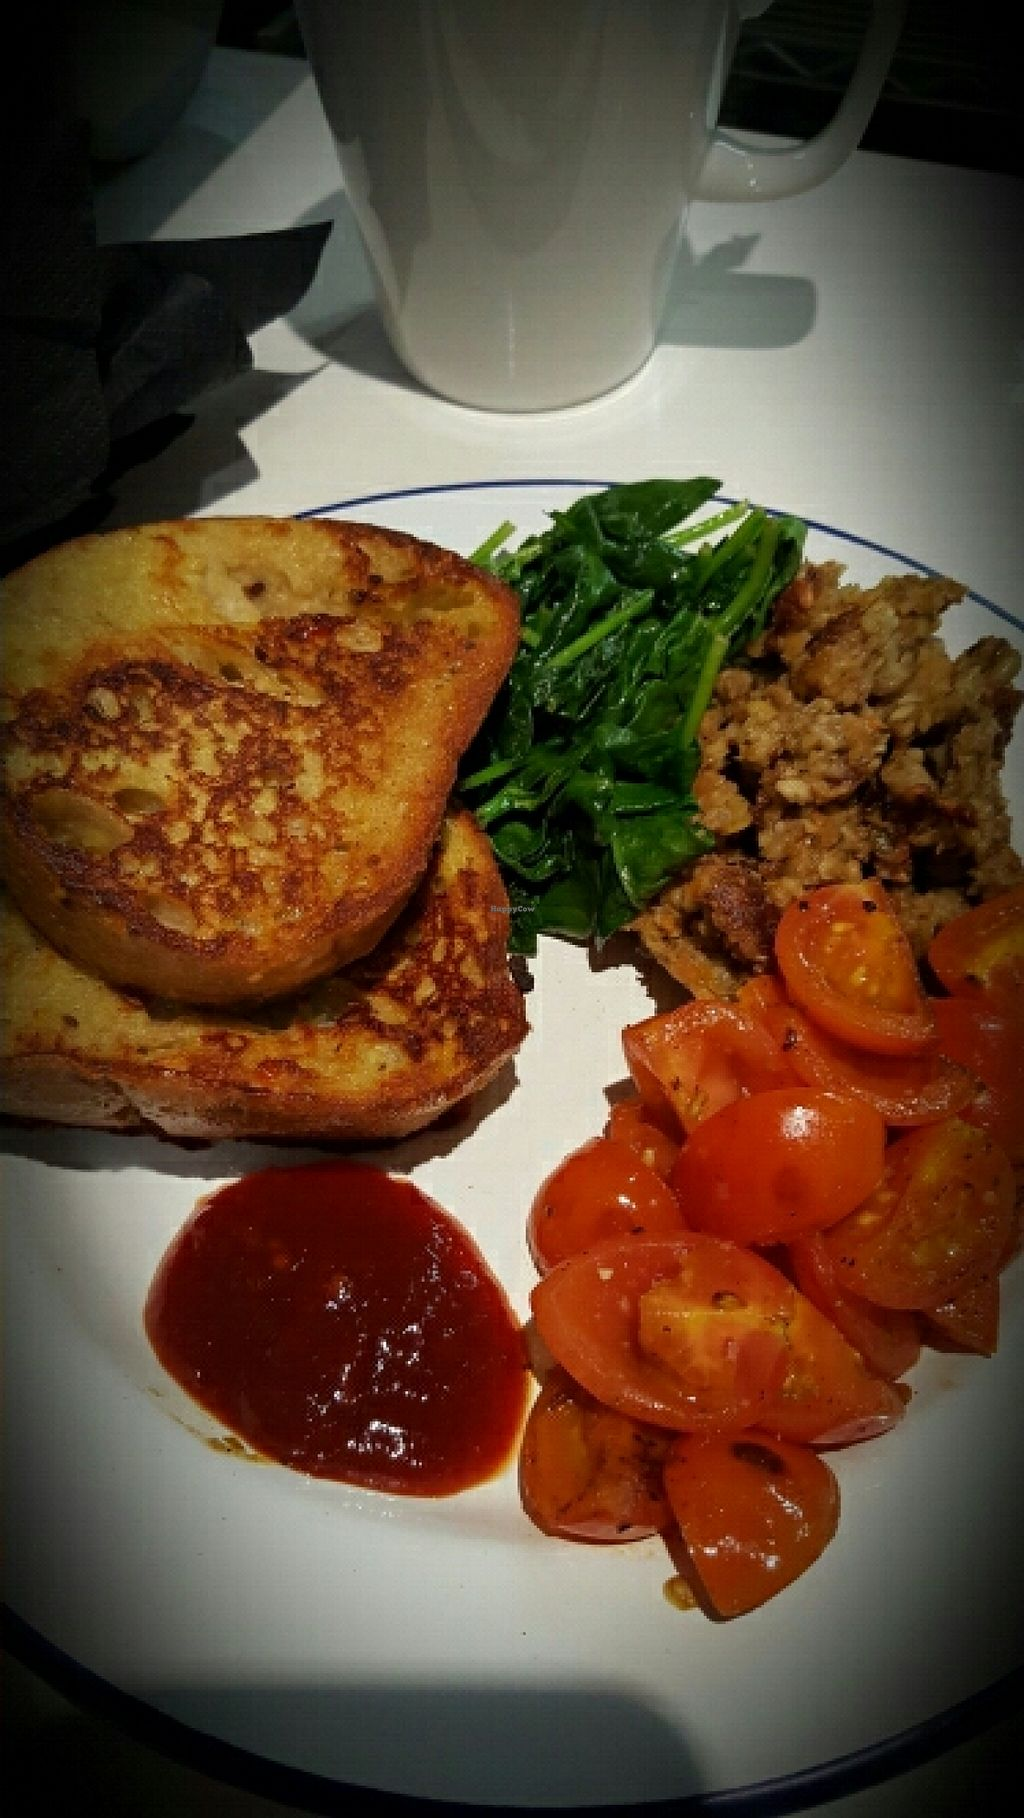 """Photo of CLOSED: The Caffeine Drip  by <a href=""""/members/profile/Fatveganslim"""">Fatveganslim</a> <br/>vegan French toast  <br/> May 3, 2016  - <a href='/contact/abuse/image/72974/147290'>Report</a>"""